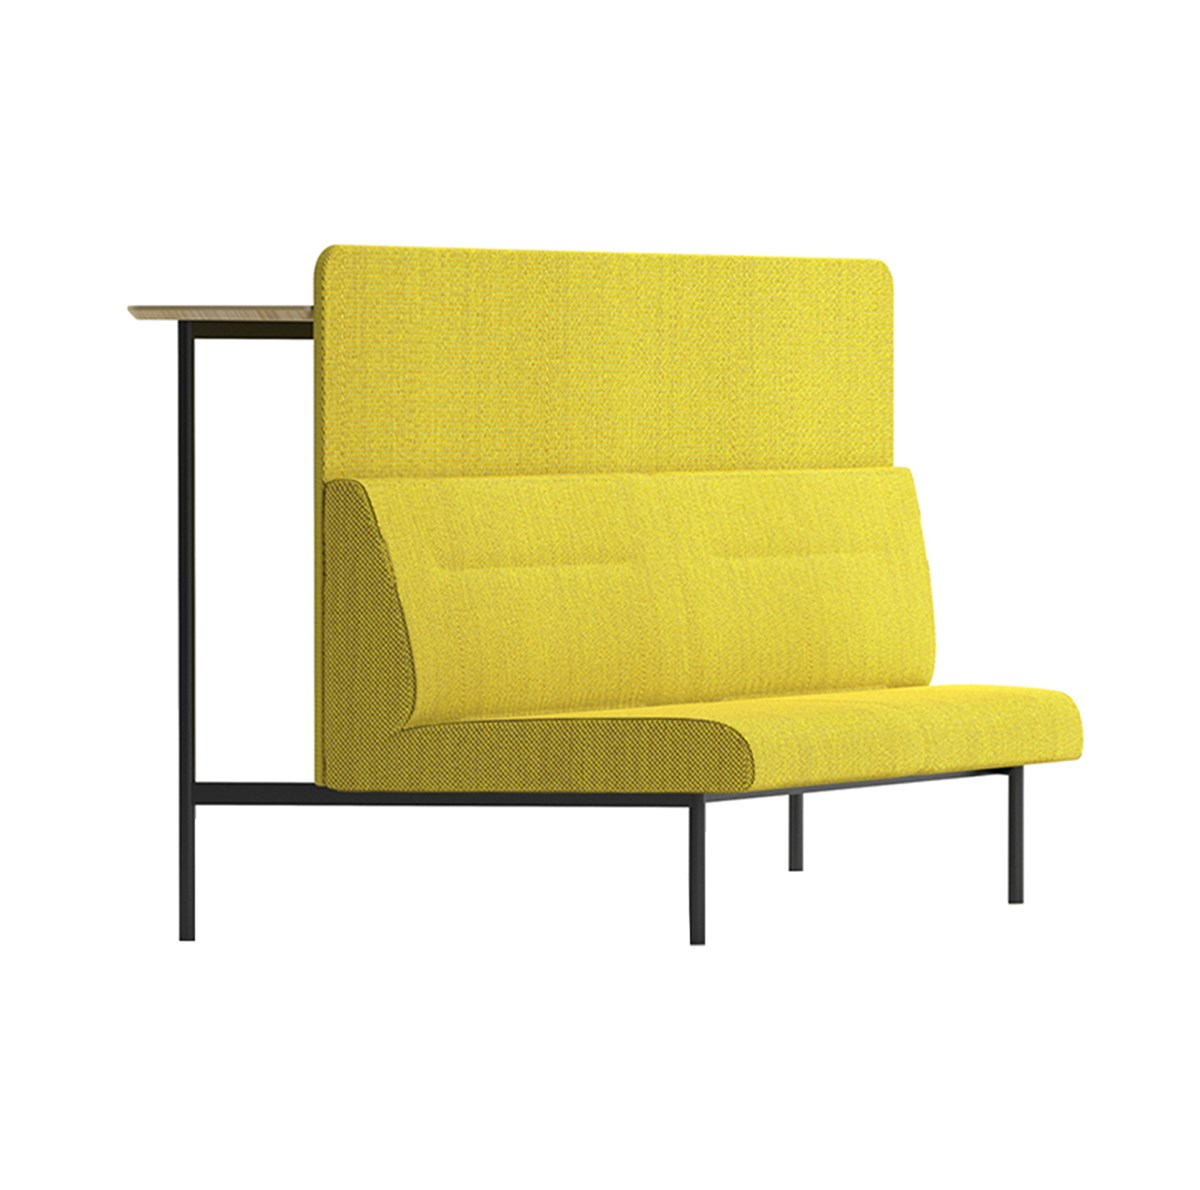 Neospace-Convey-Sofa-System-Contract-Matisse-3